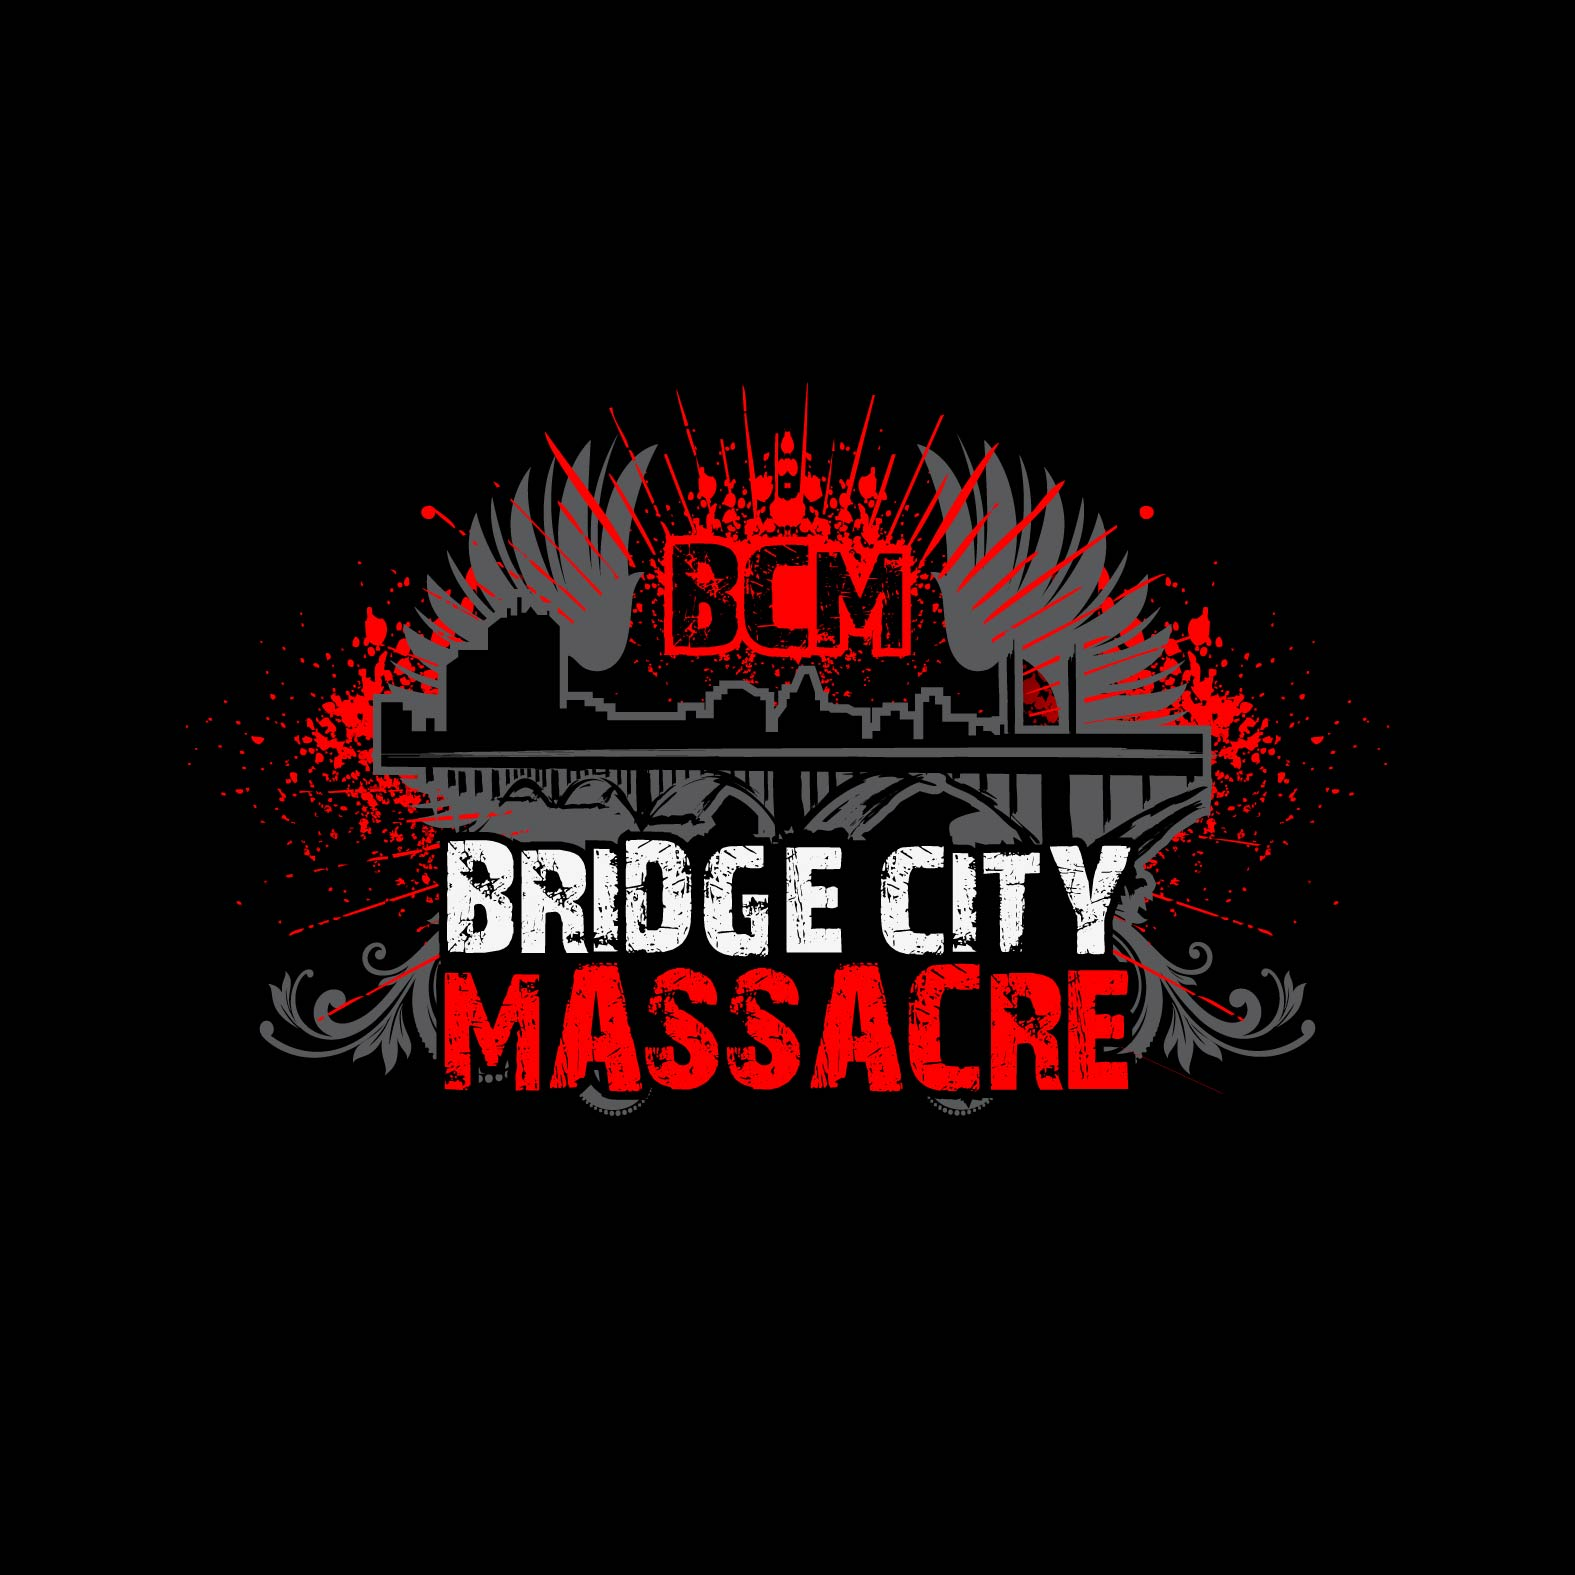 Logo Design by lagalag - Entry No. 19 in the Logo Design Contest New Logo Design for Bridge City Massacre.